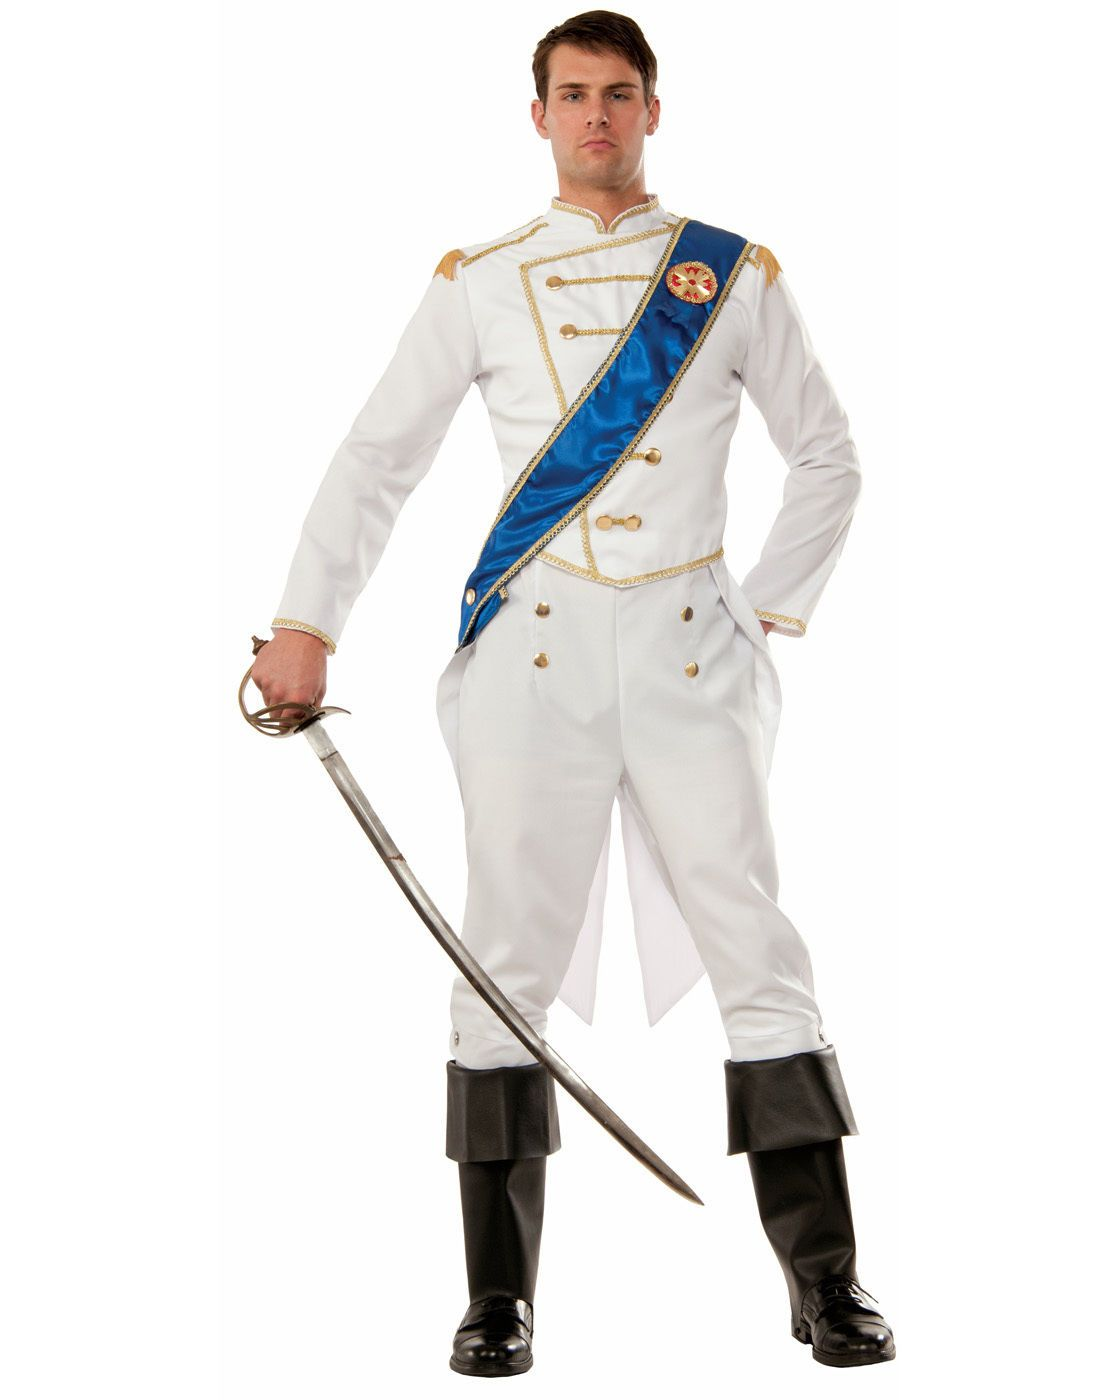 Fairytale Storybook Cinderella Prince Charming Adult Male Costume Std | EBay